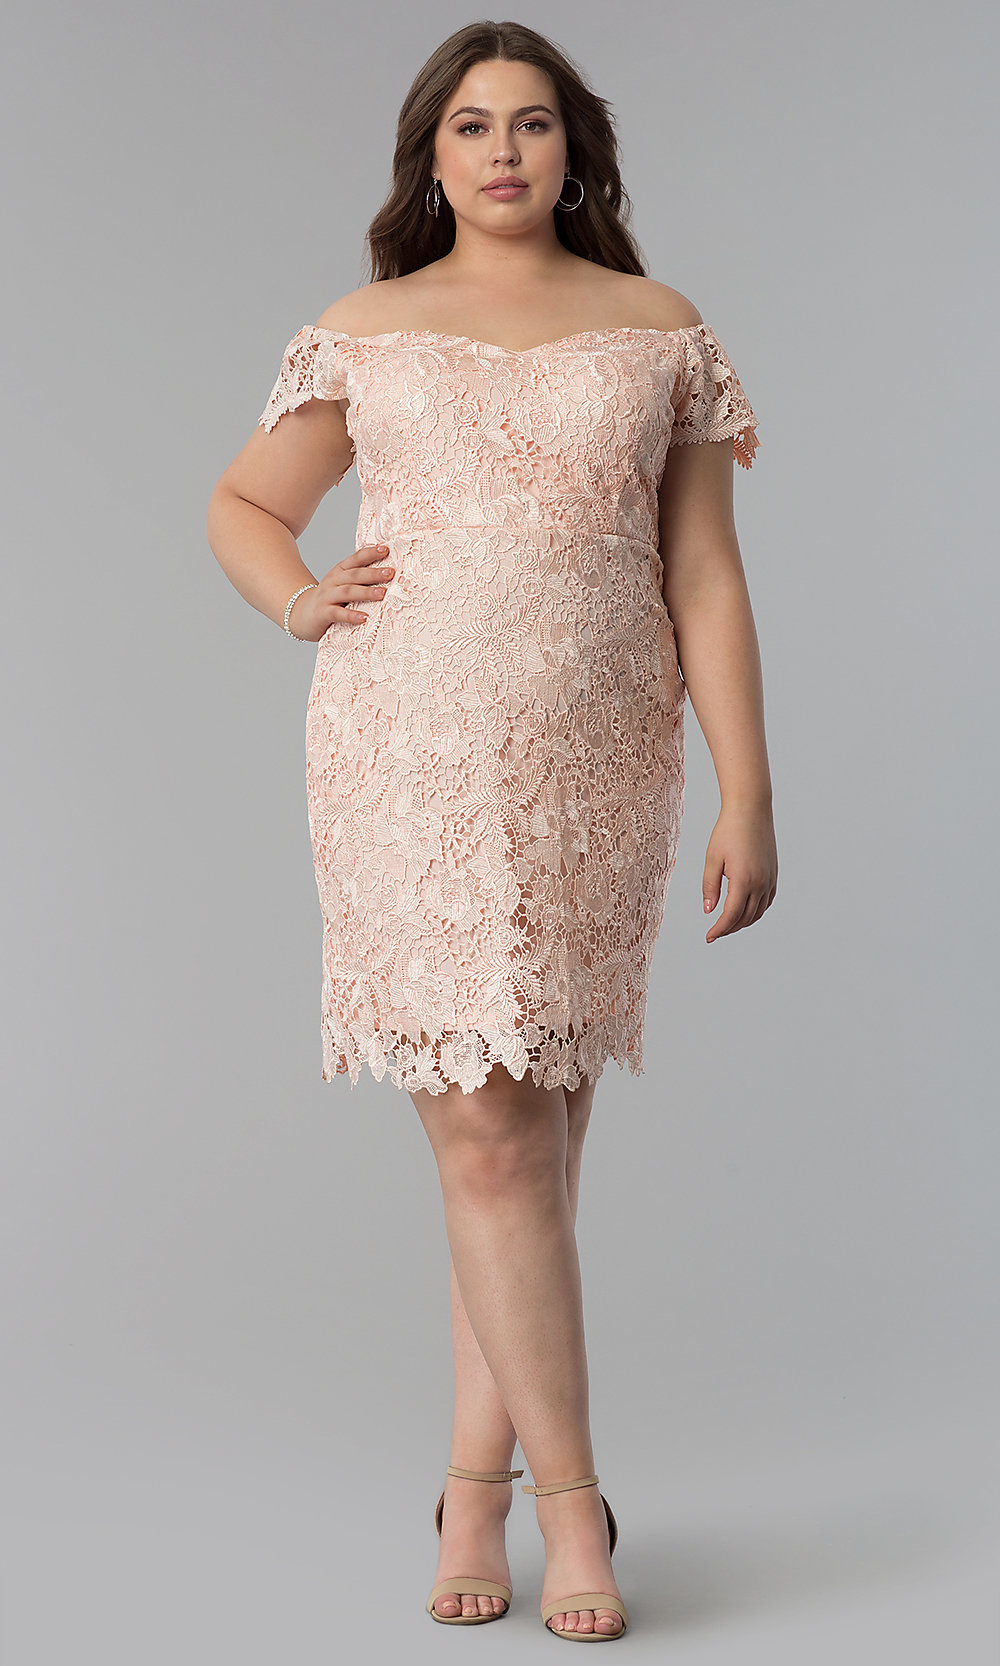 ef4dccb08ad35 ... plus-size wedding guest lace dress. Style  SOI. Tap to expand